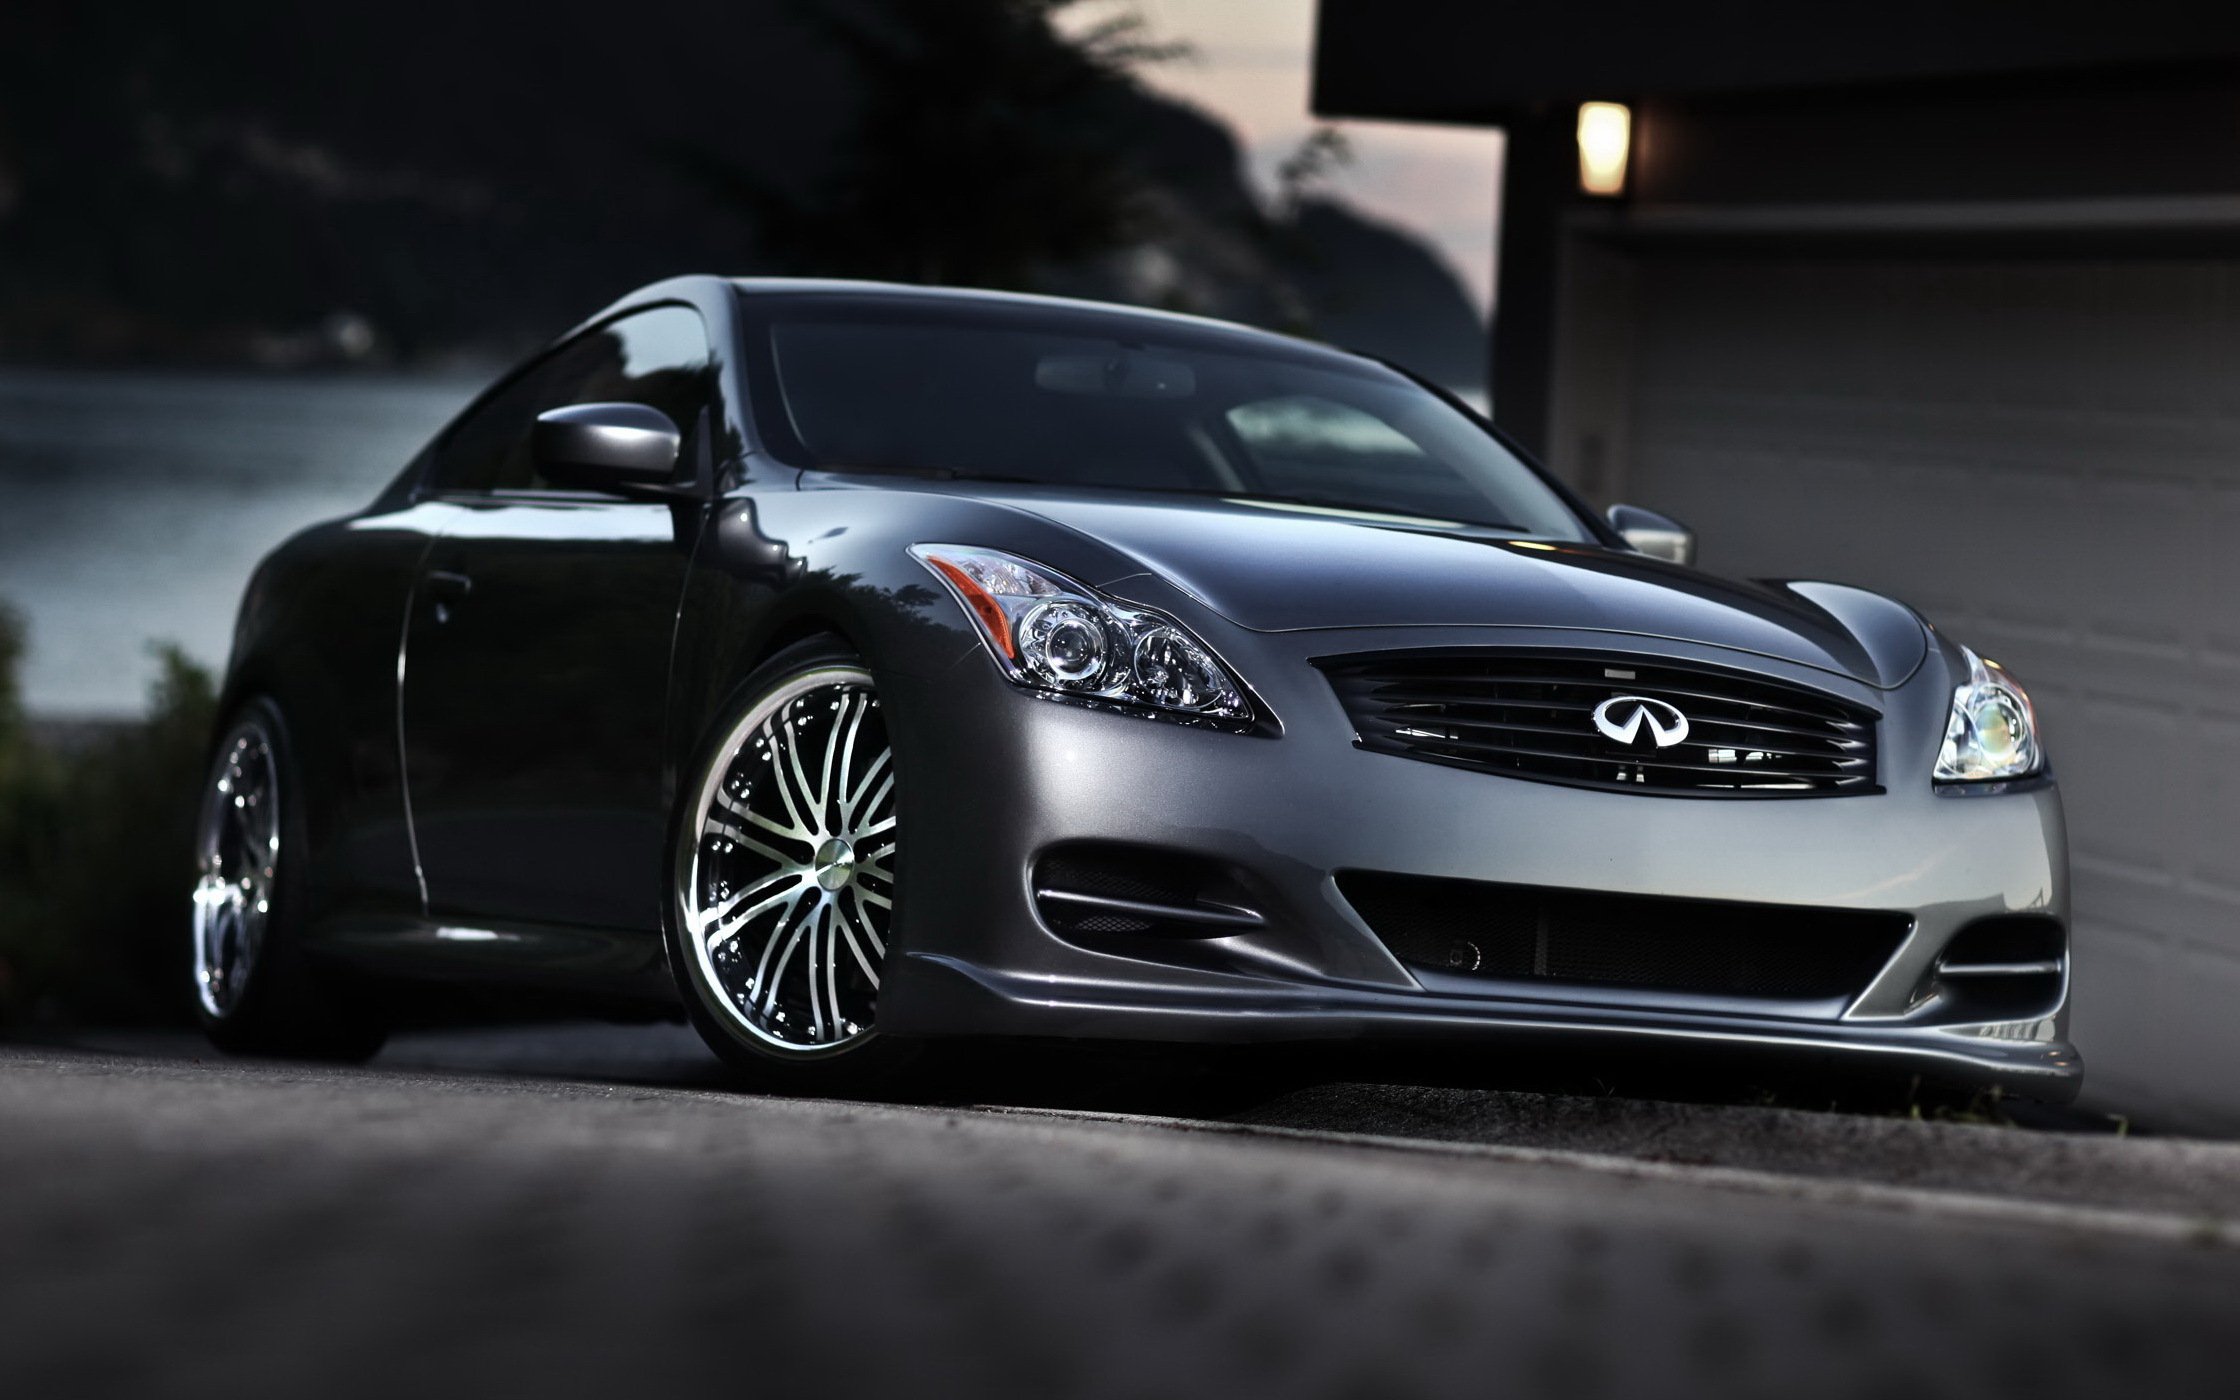 2015 Incurve Wheels cars <b>tuning g37 infiniti</b> sedan <b>wallpaper</b> ...